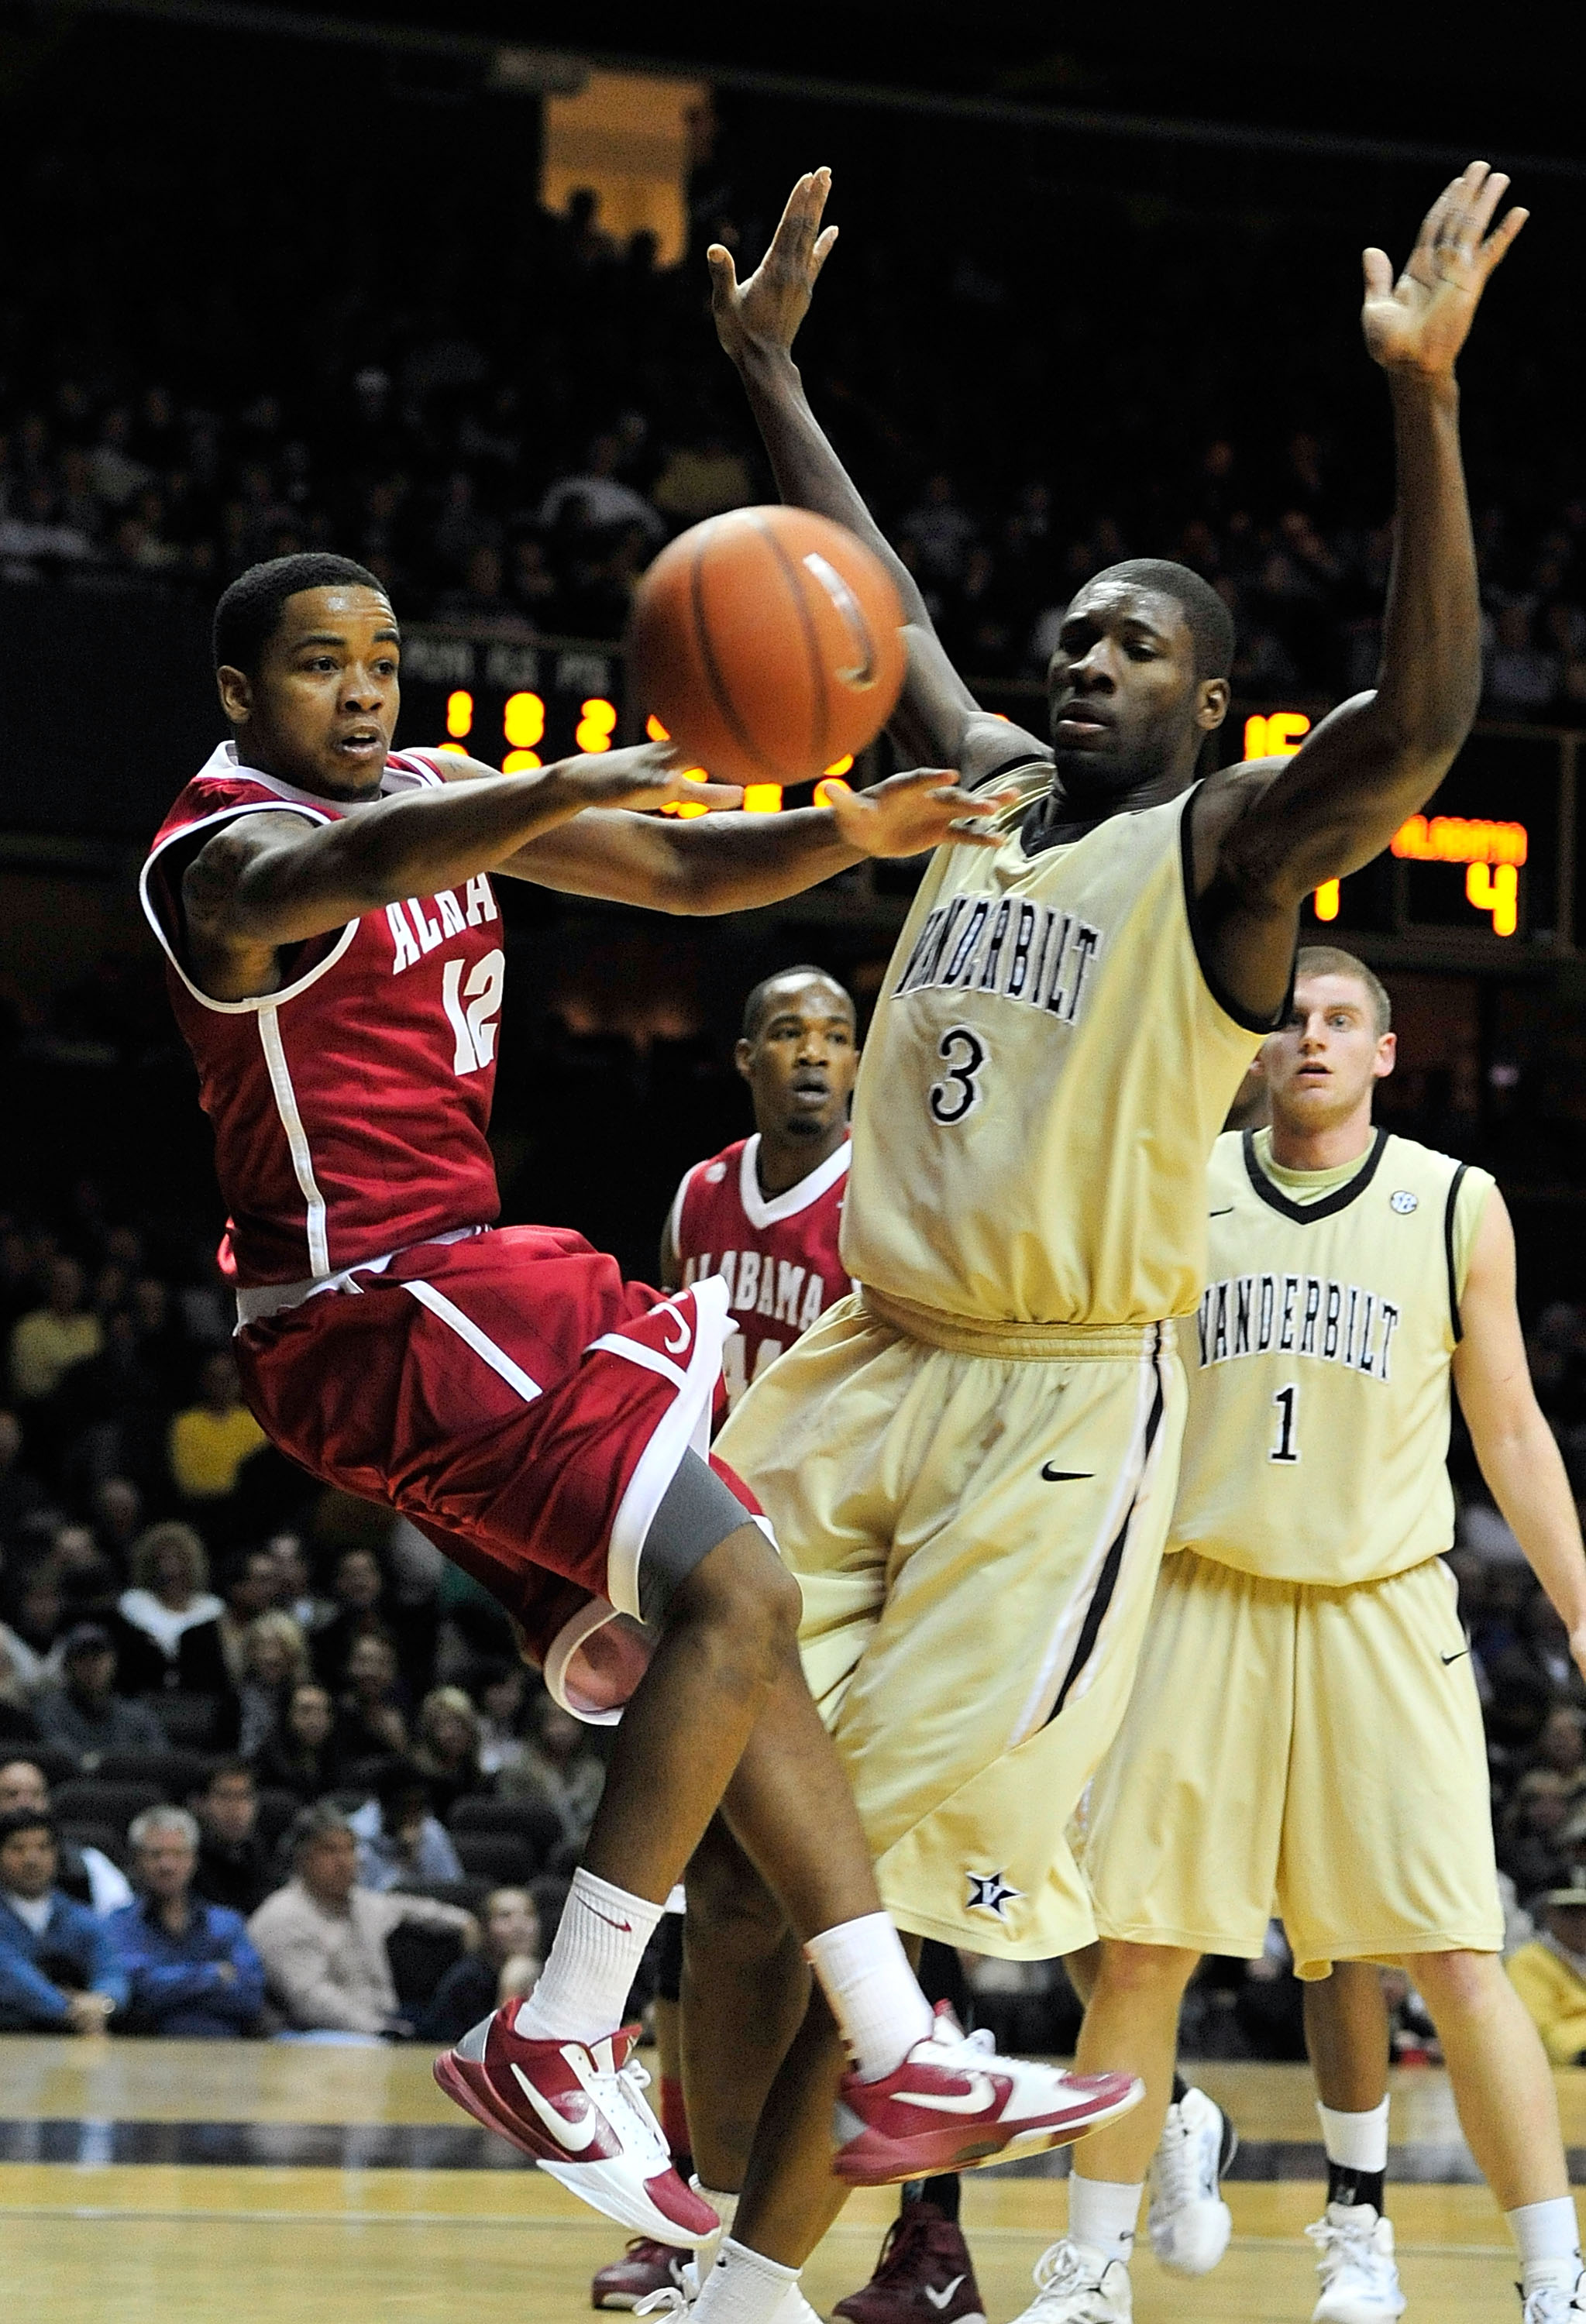 NASHVILLE, TN - FEBRUARY 10:  Trevor Releford #13 of the Alabama Crimson Tide drives against Festus Ezeli #3 of the Vanderbilt Commodores at Memorial Gym on February 10, 2011 in Nashville, Tennessee.  (Photo by Grant Halverson/Getty Images)